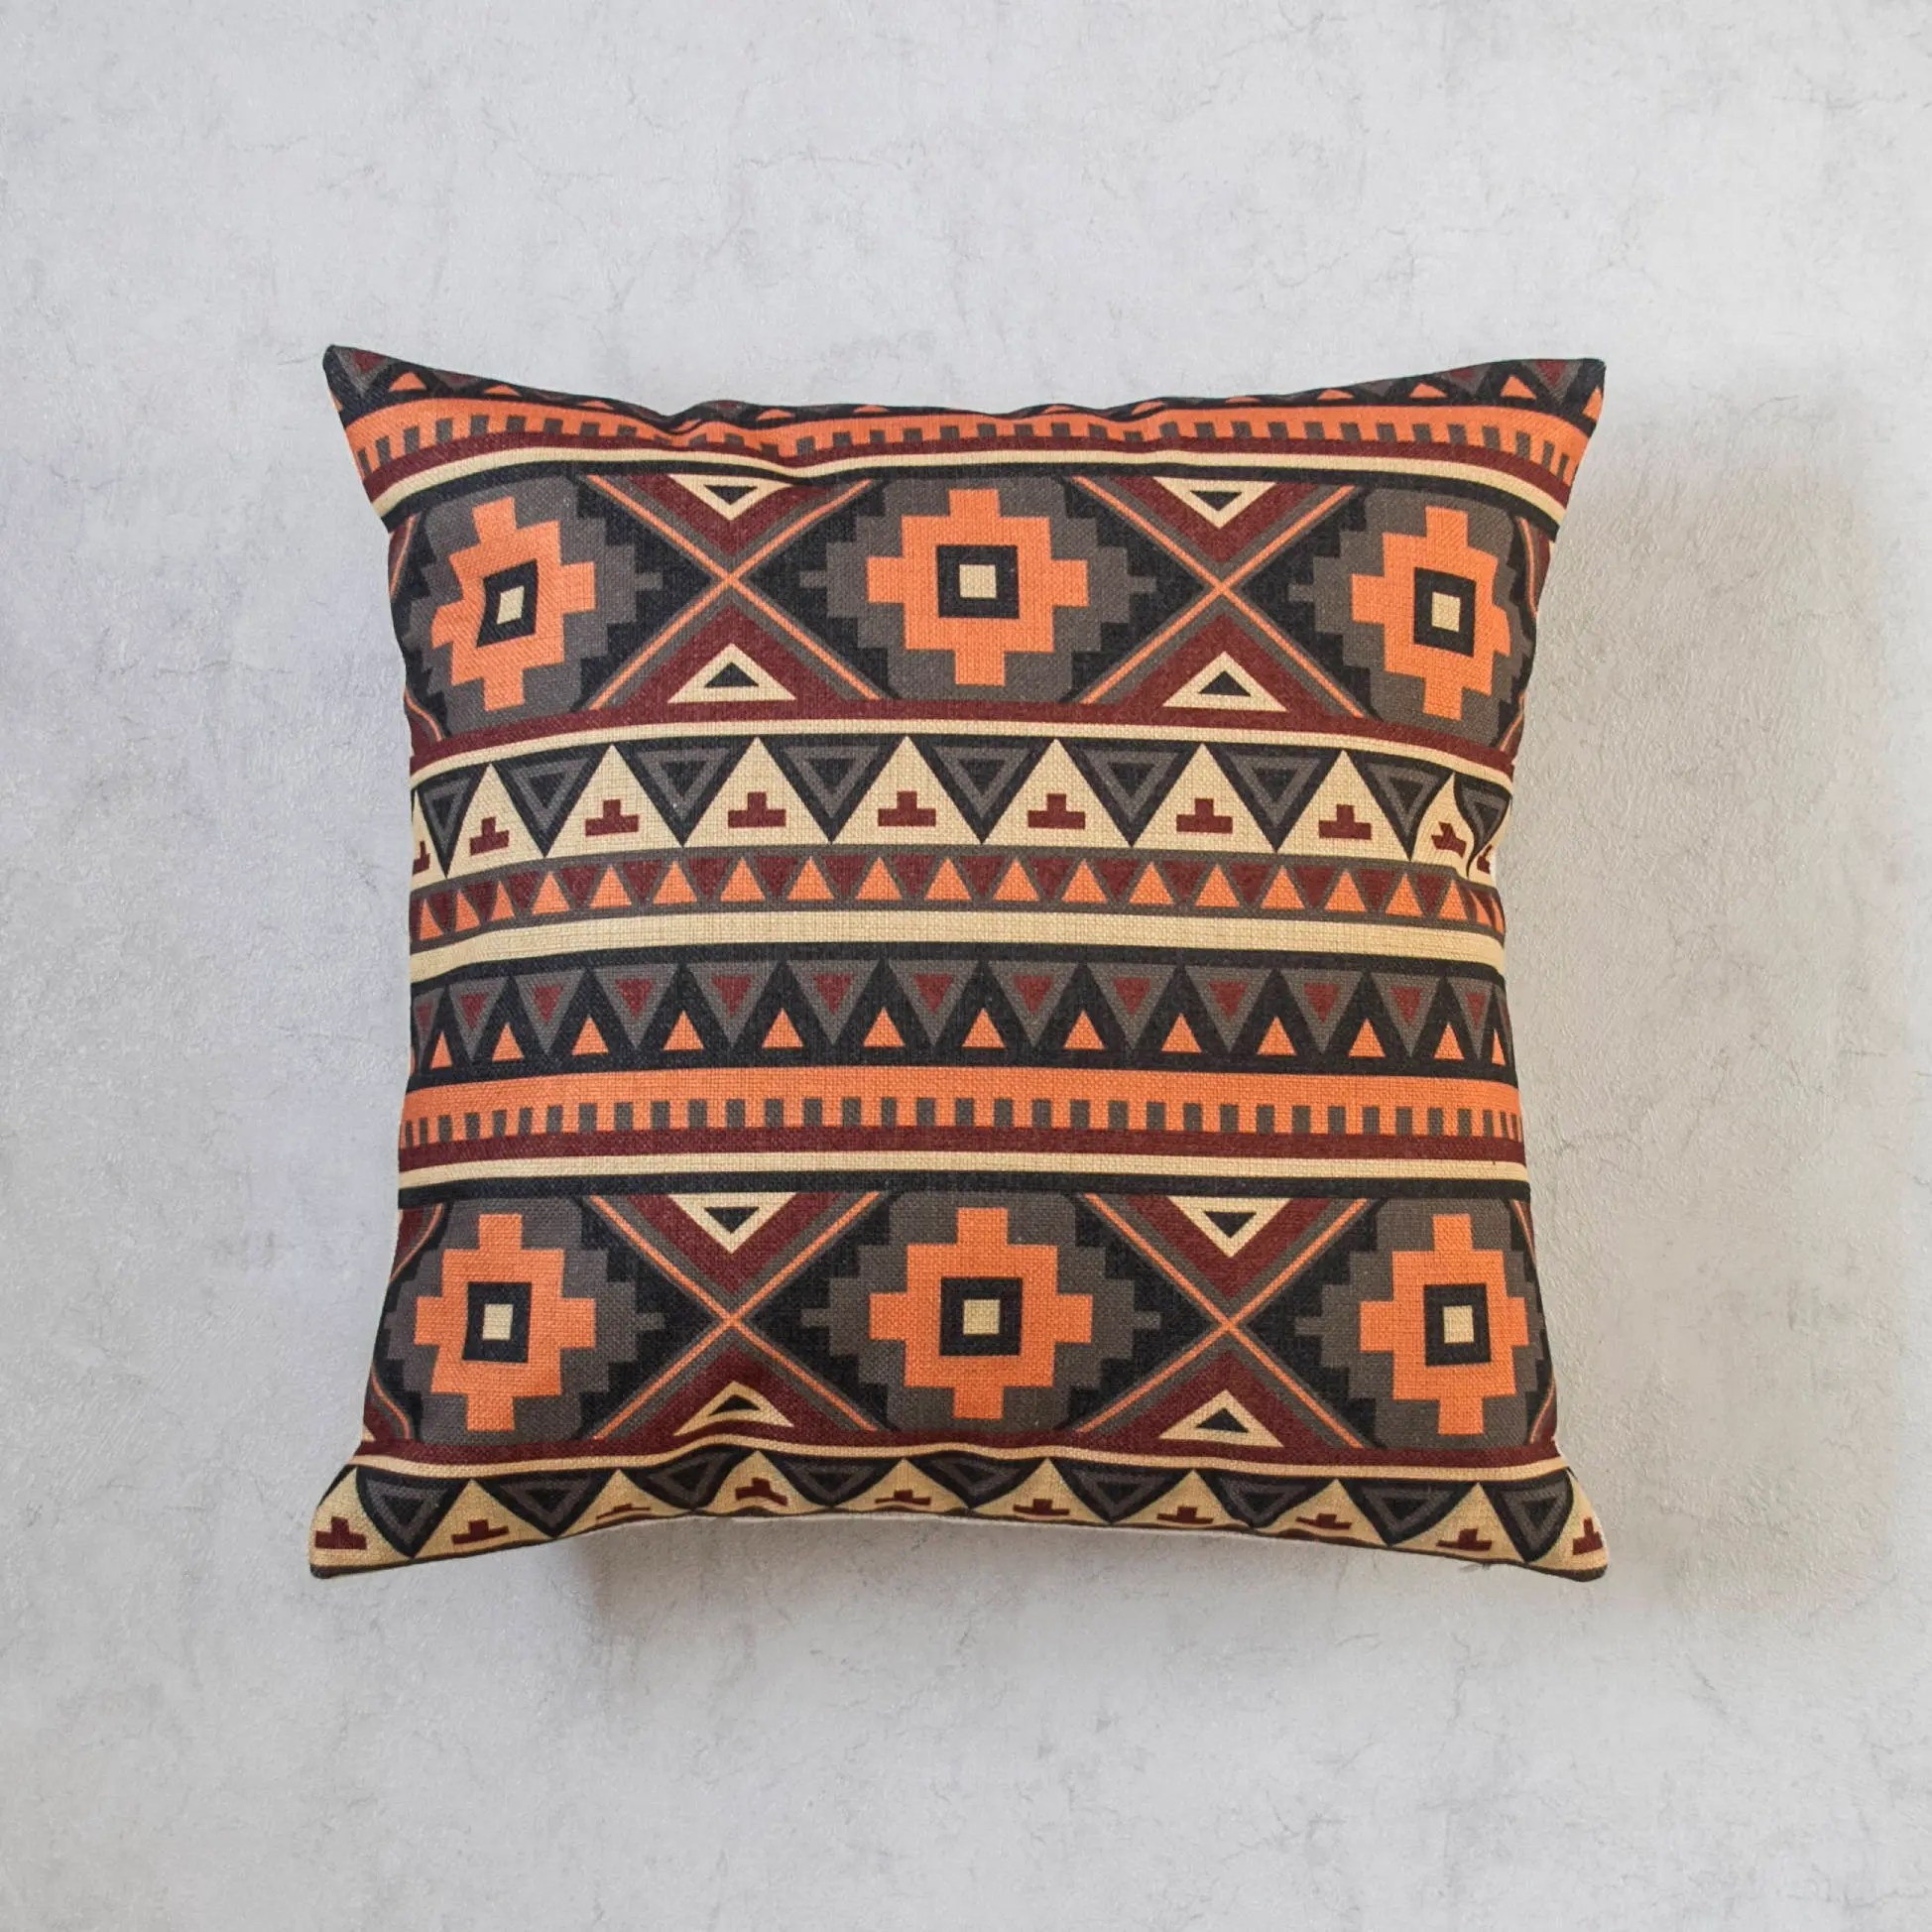 Boho Cushions Australia Boho Pillow Cover Bohemia Pattern Pillow Covers Aztec